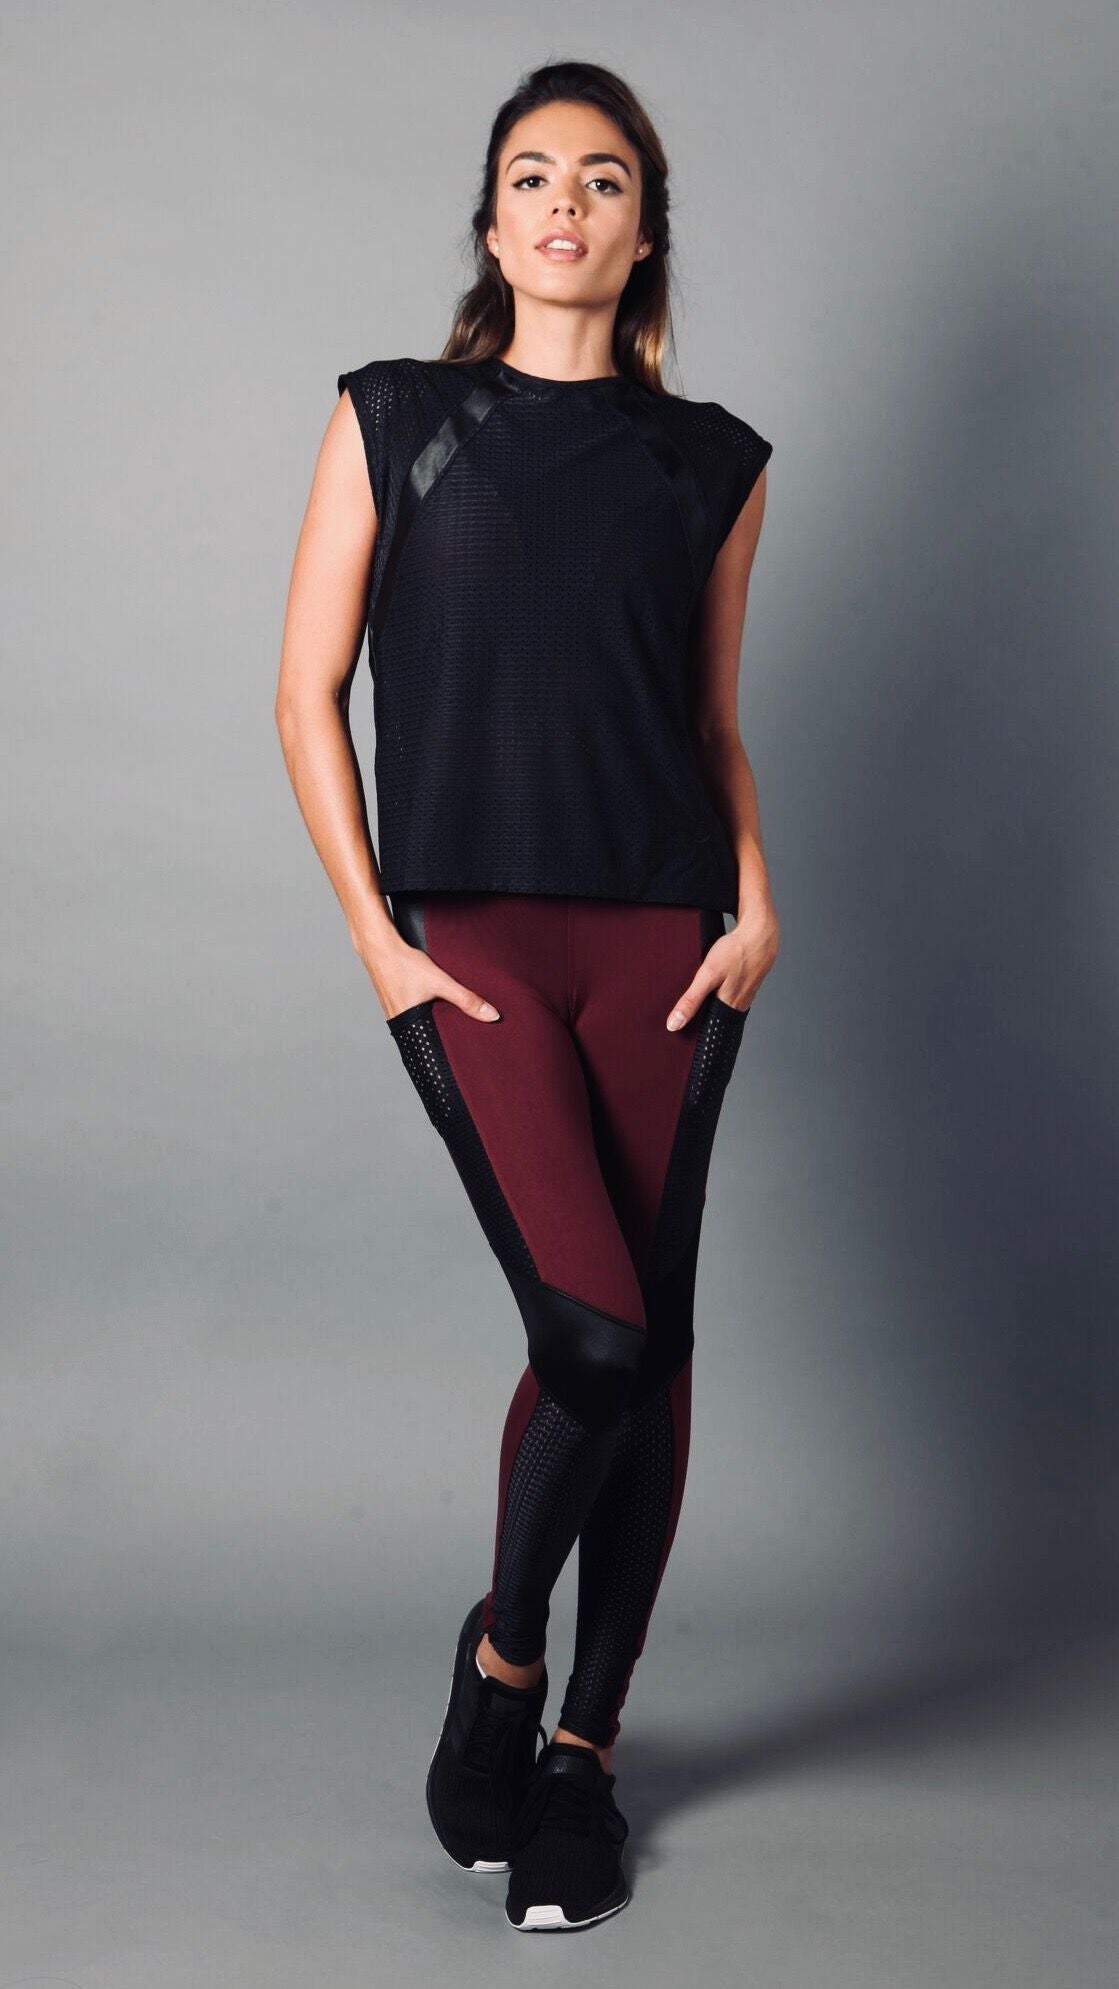 BLACK LEATHER LIZ LONG TOP LT1146 - Equilibrium Activewear